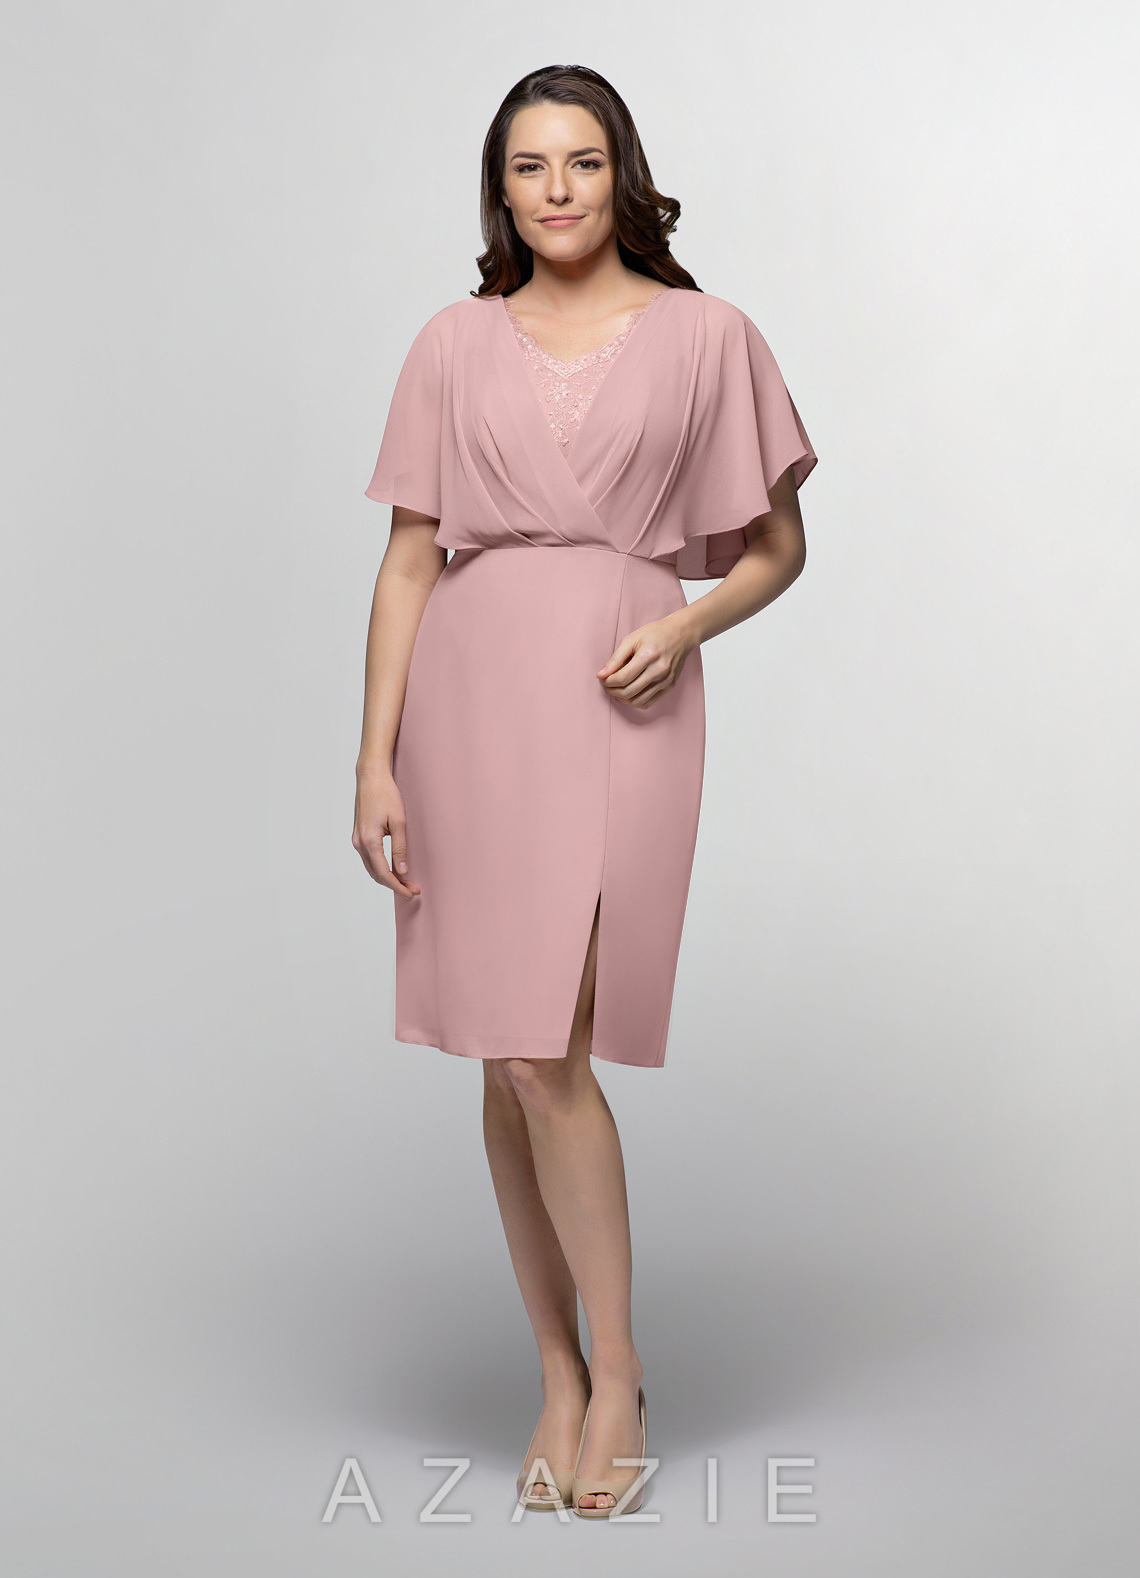 1f6ad1a07e055 Azazie Aracely MBD Mother Of The Bride Dress | Azazie